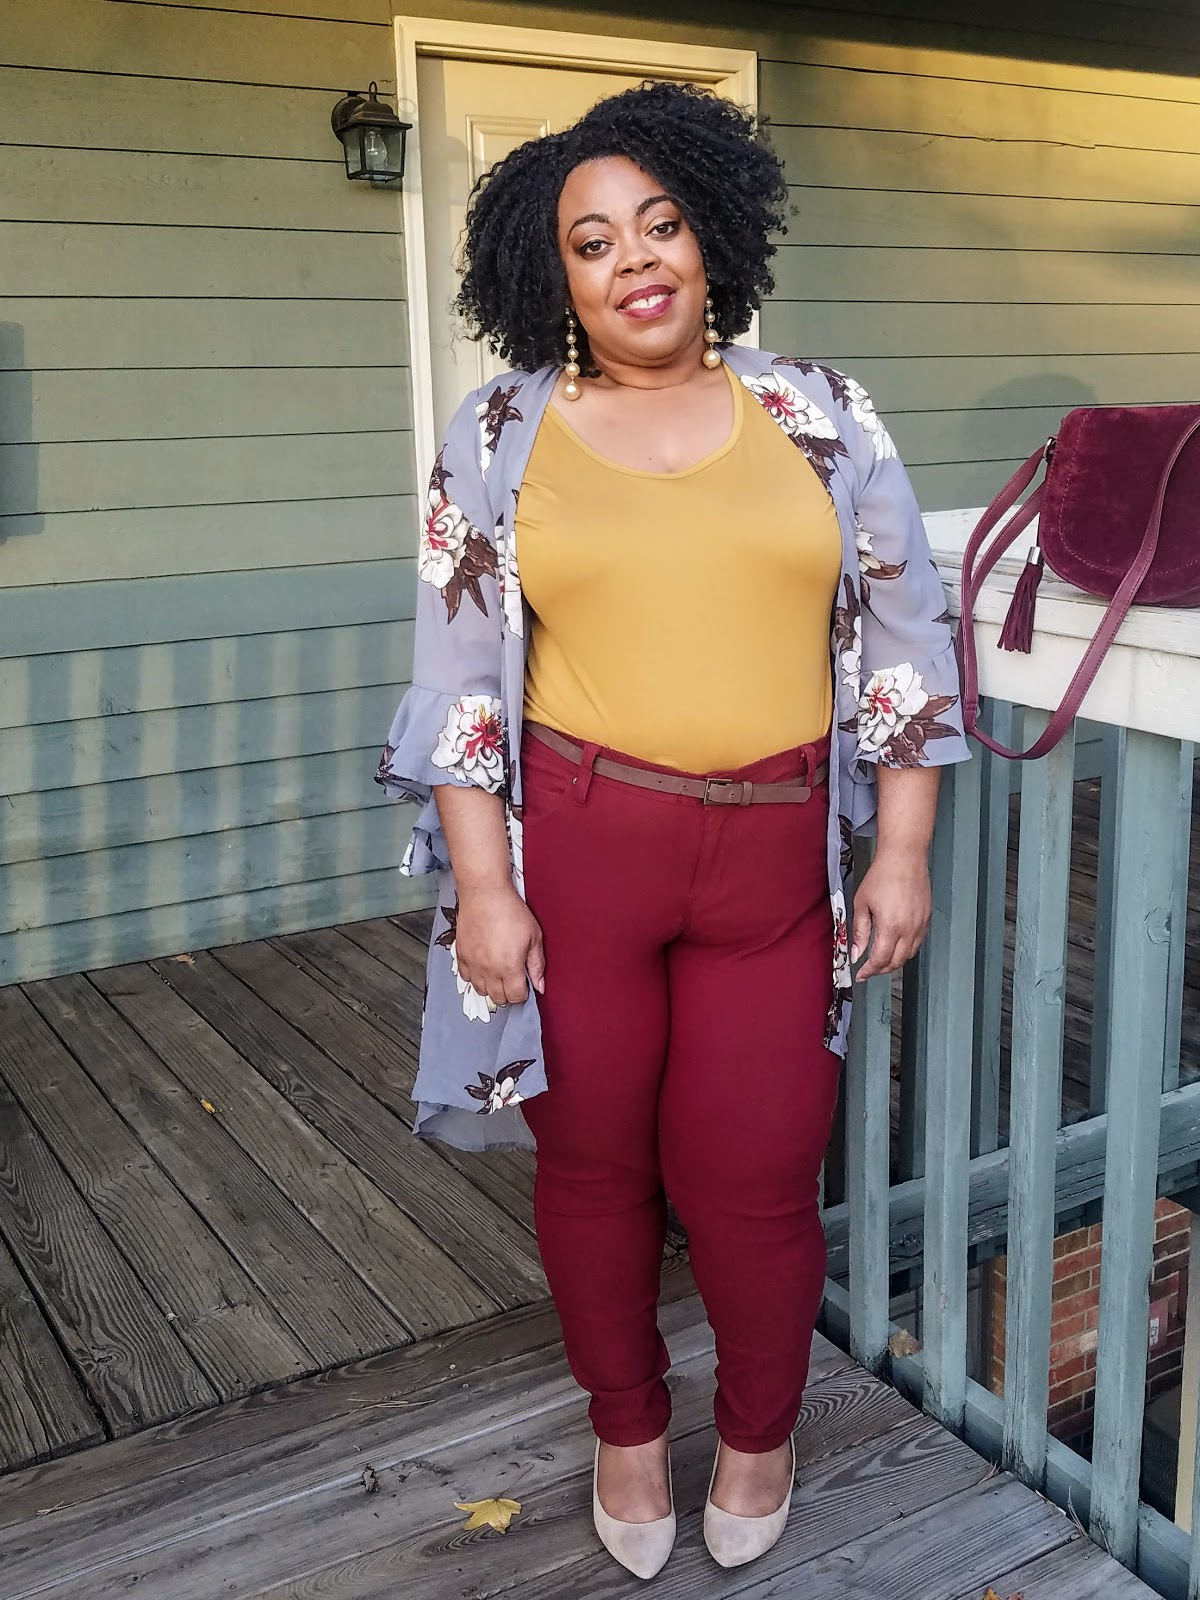 plus size blogger, duster, bell sleeves, floral print, kitten heels, gold pearls, natural hair, protective style